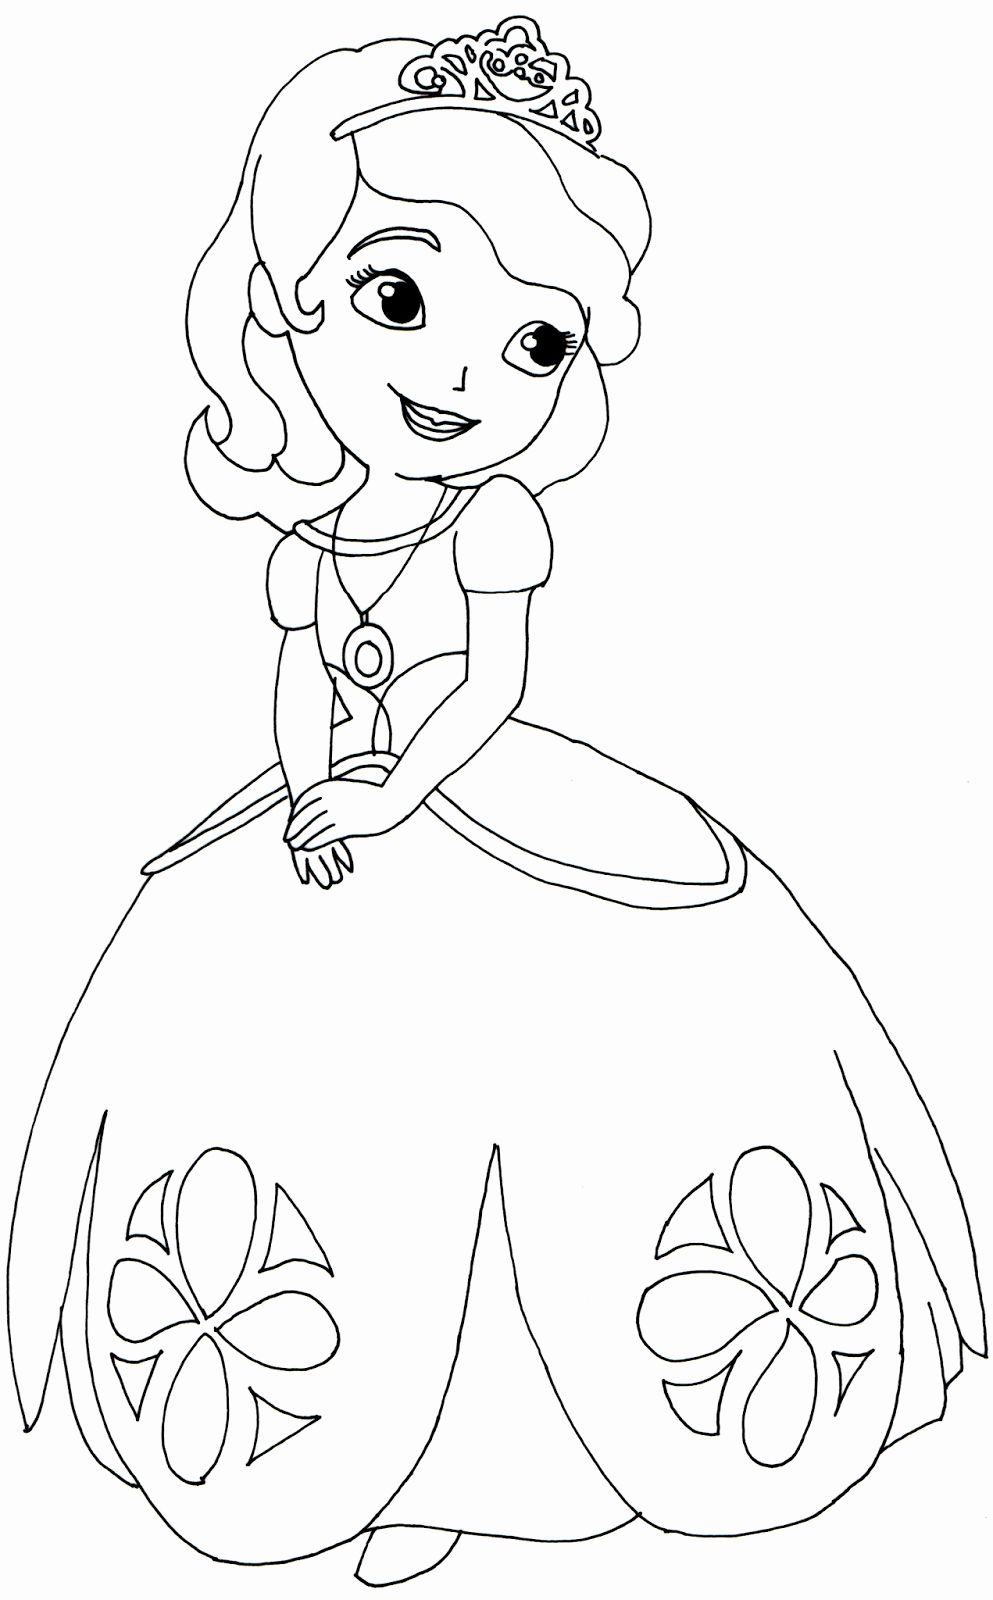 Sofia The First Coloring Book Unique Sofia The First Coloring Pages Sofia The F Princess Coloring Pages Disney Coloring Pages Printables Cartoon Coloring Pages